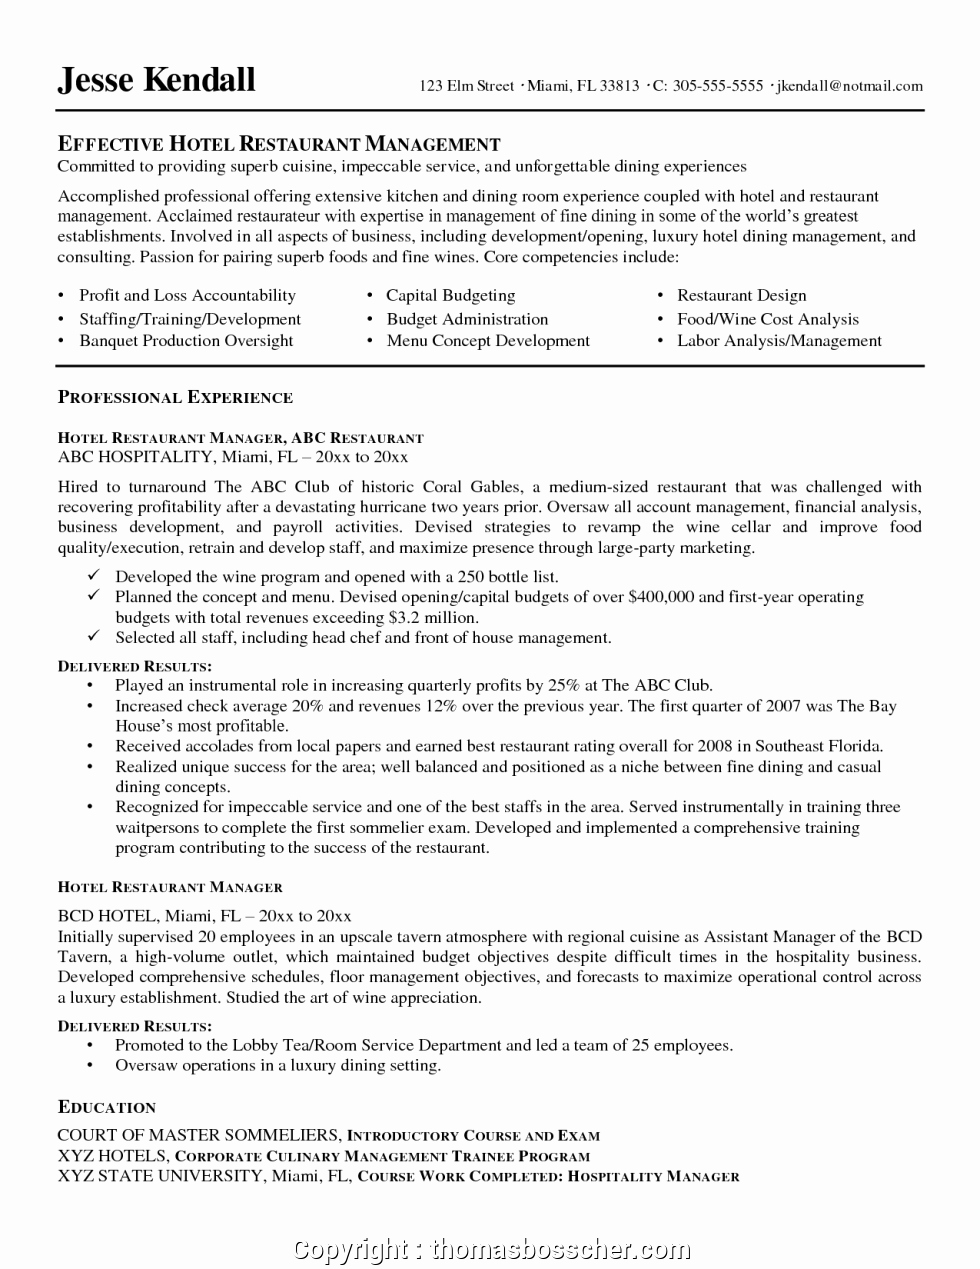 Restaurant General Manager Resumes Beautiful top Restaurant General Manager Resume Examples Restaurant